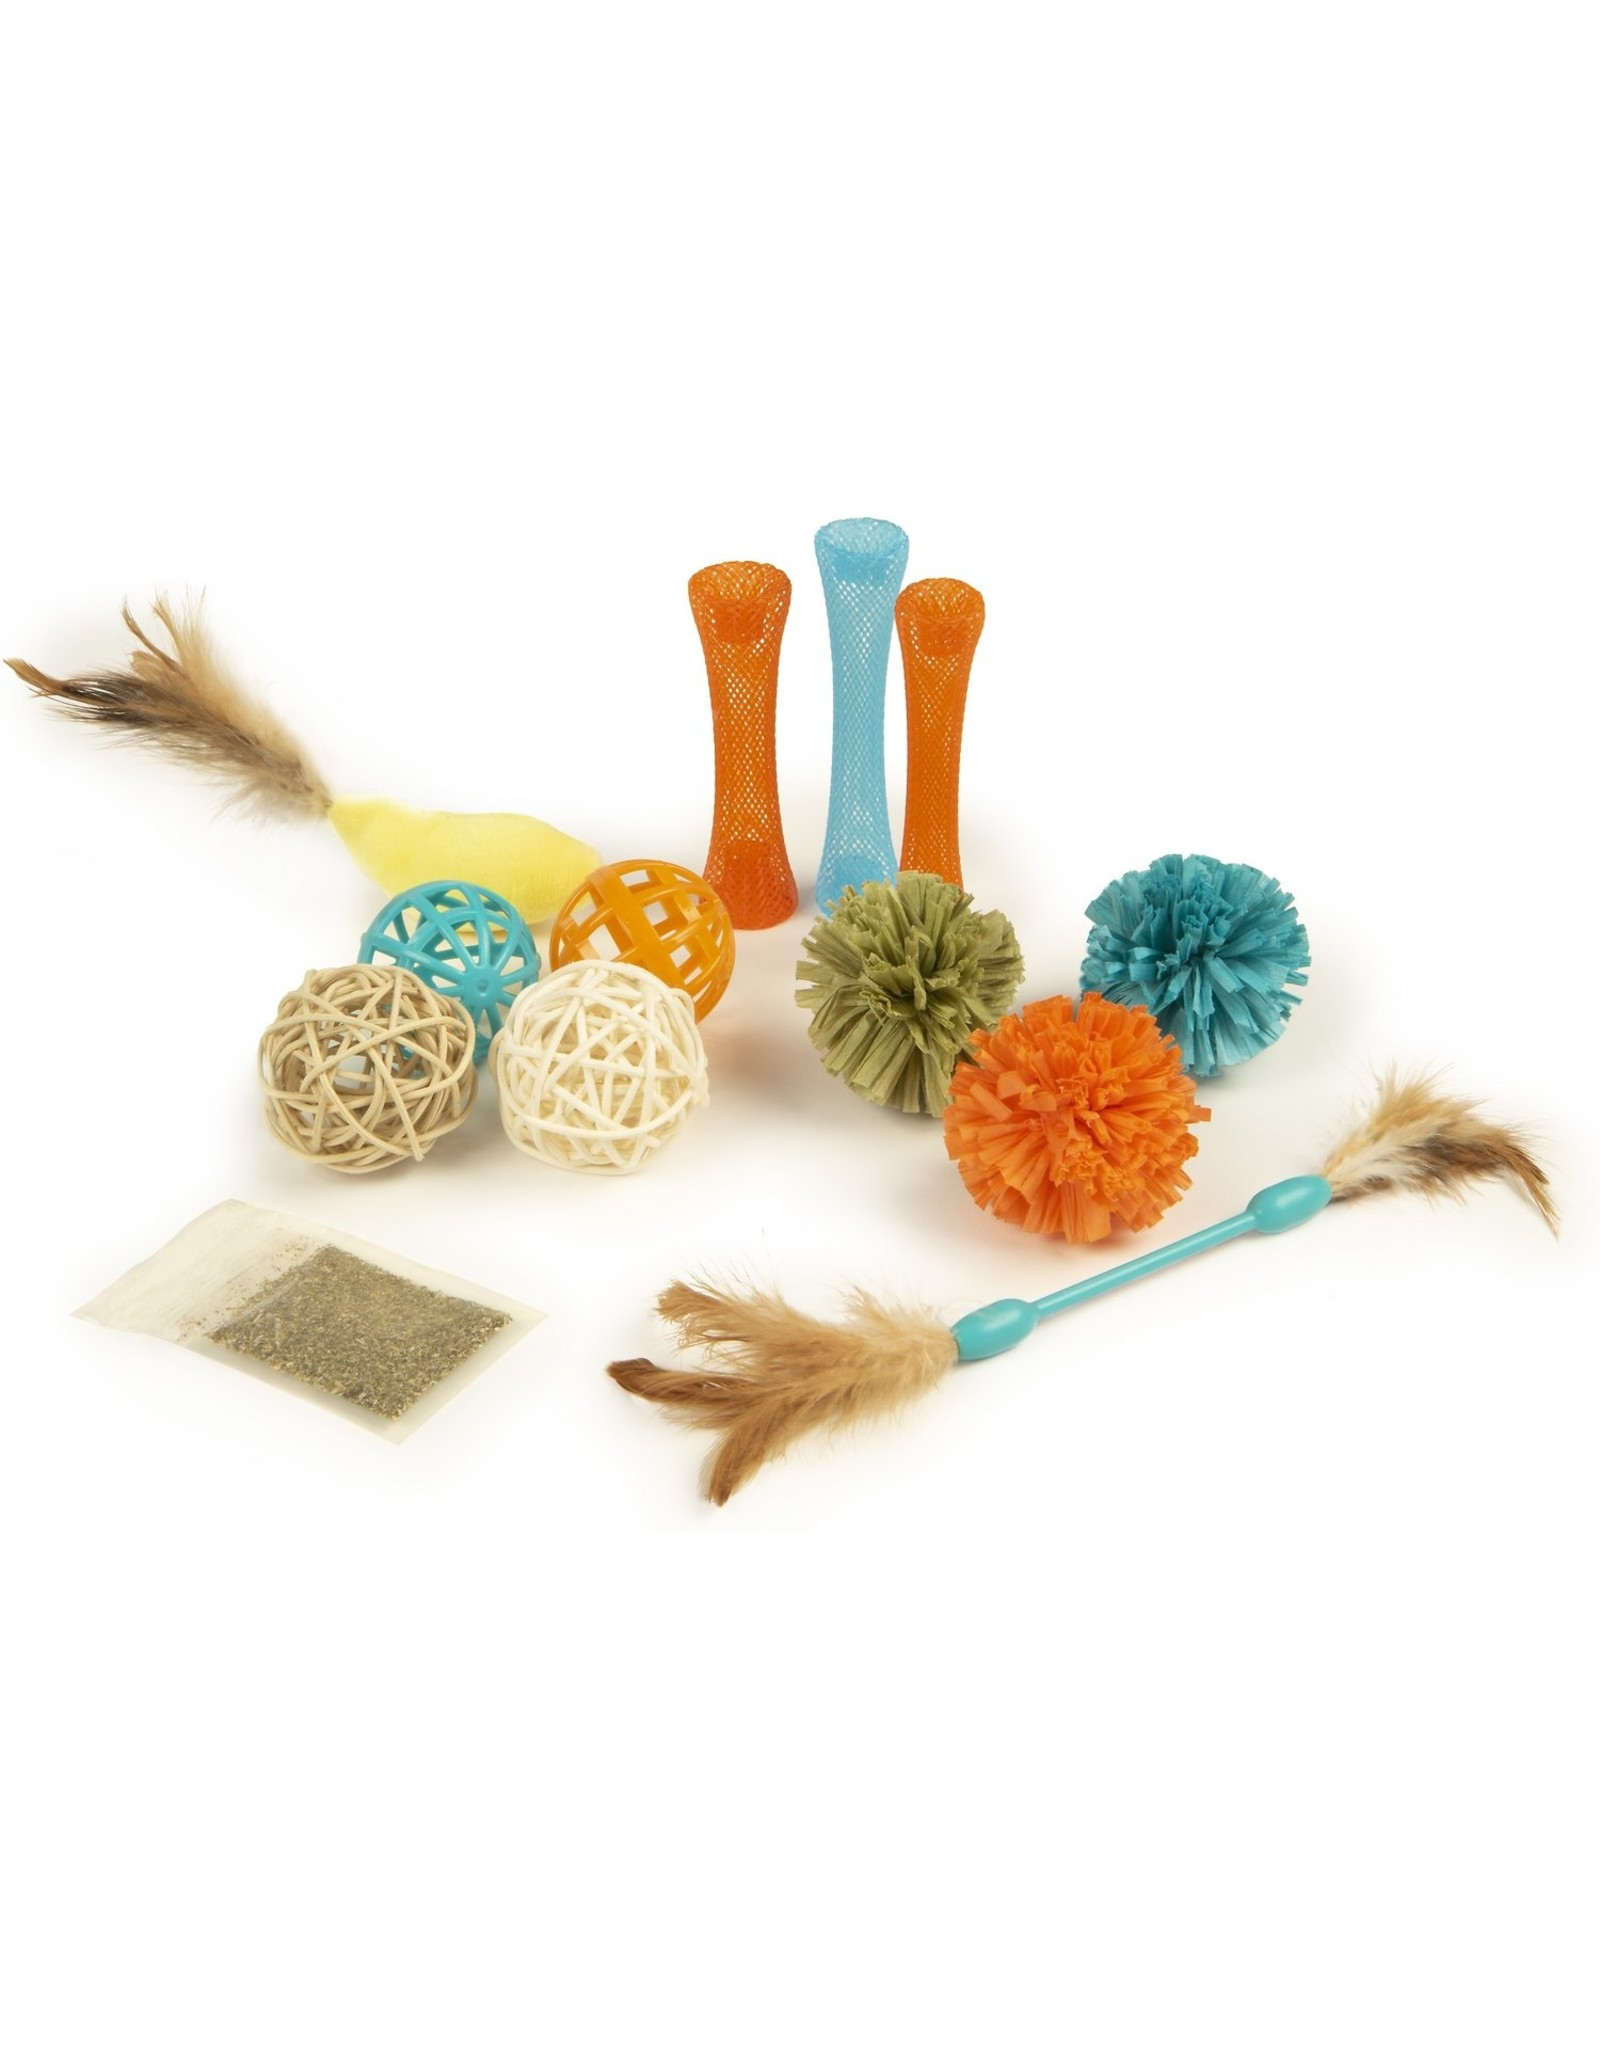 Petlinks Petlinks Play Pack Cat Toy Value Pack 13ct with Balls, Tubes, Feather Toys, Catnip